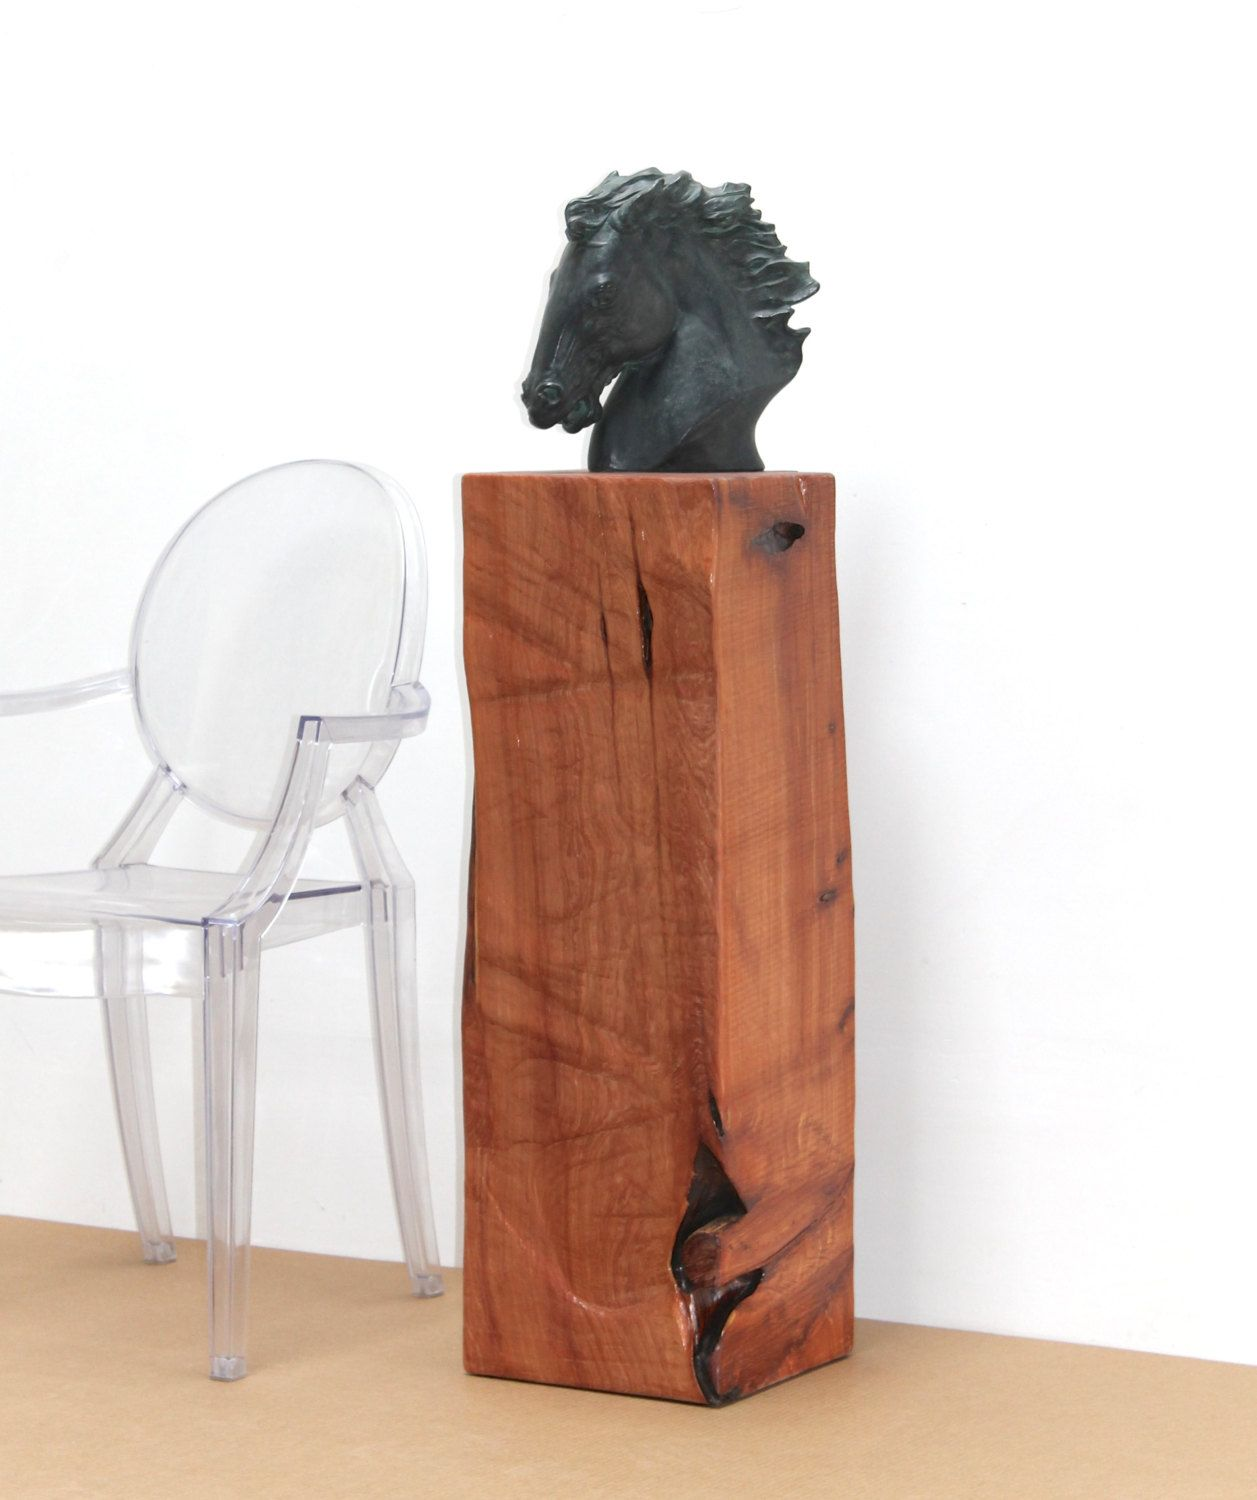 Reclaimed Timber Pedestal Art Sculpture Stand Display